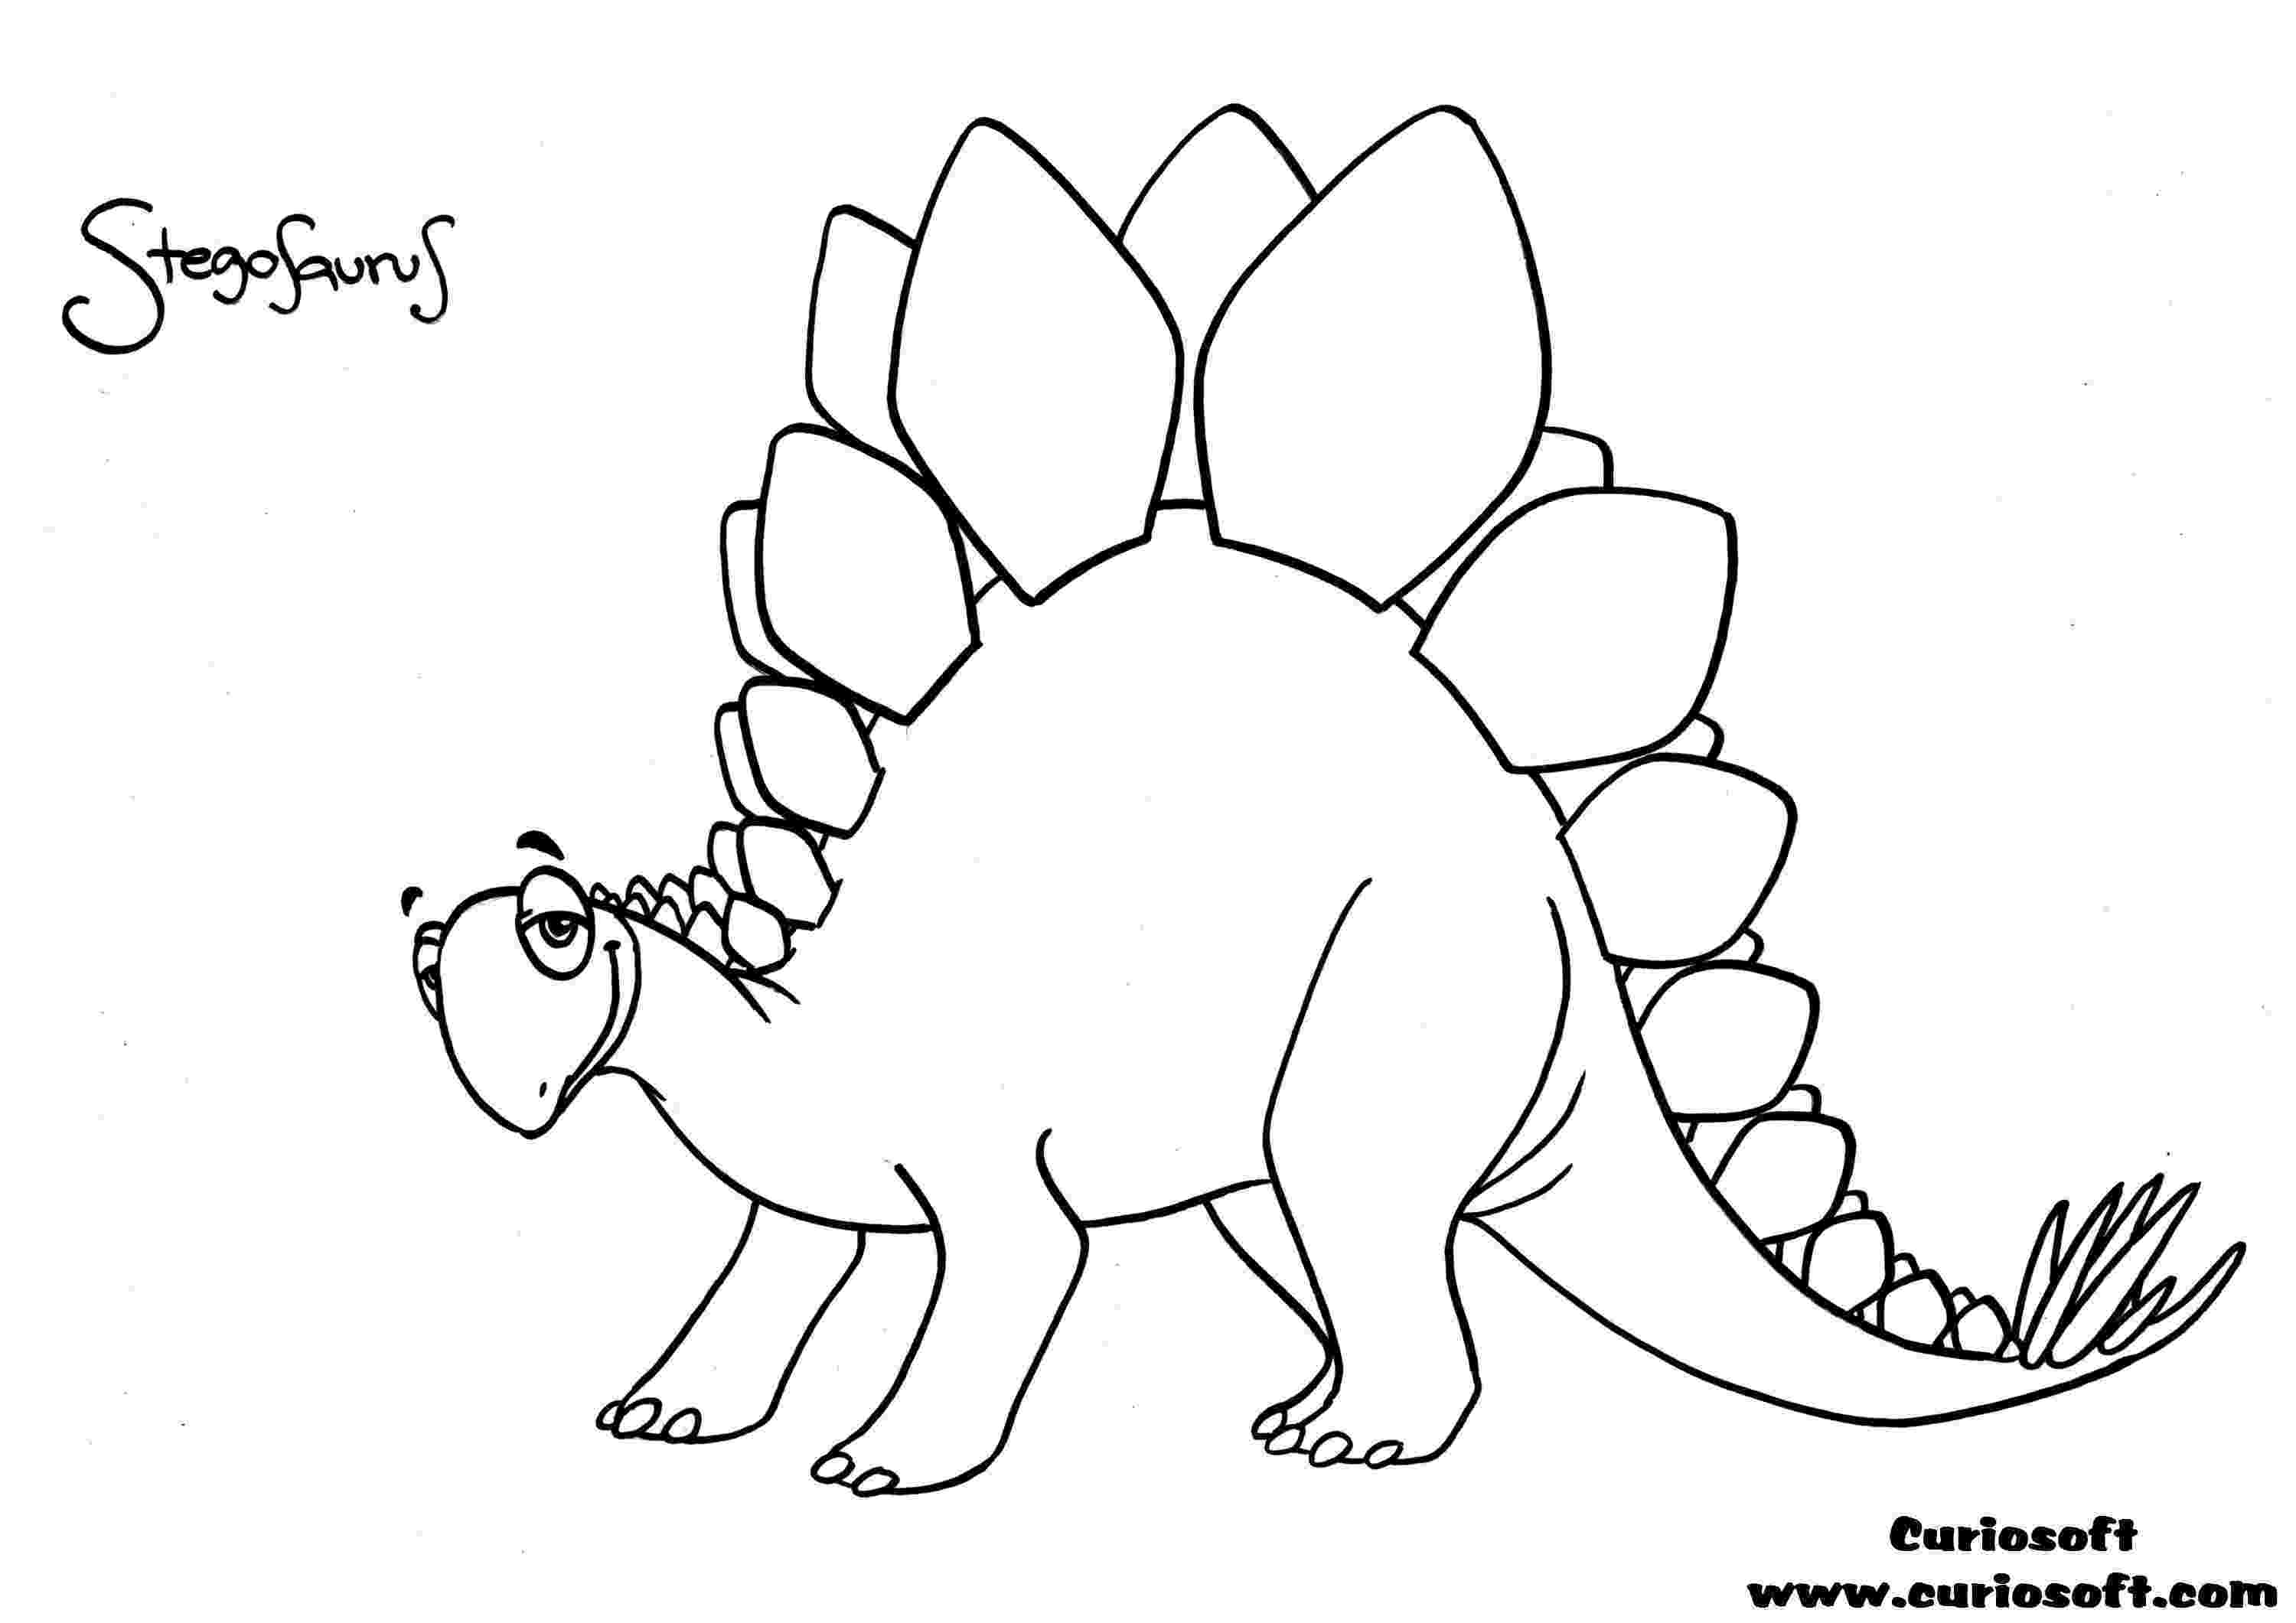 stegosaurus pictures good stegosaurus coloring pages 78 with additional stegosaurus pictures